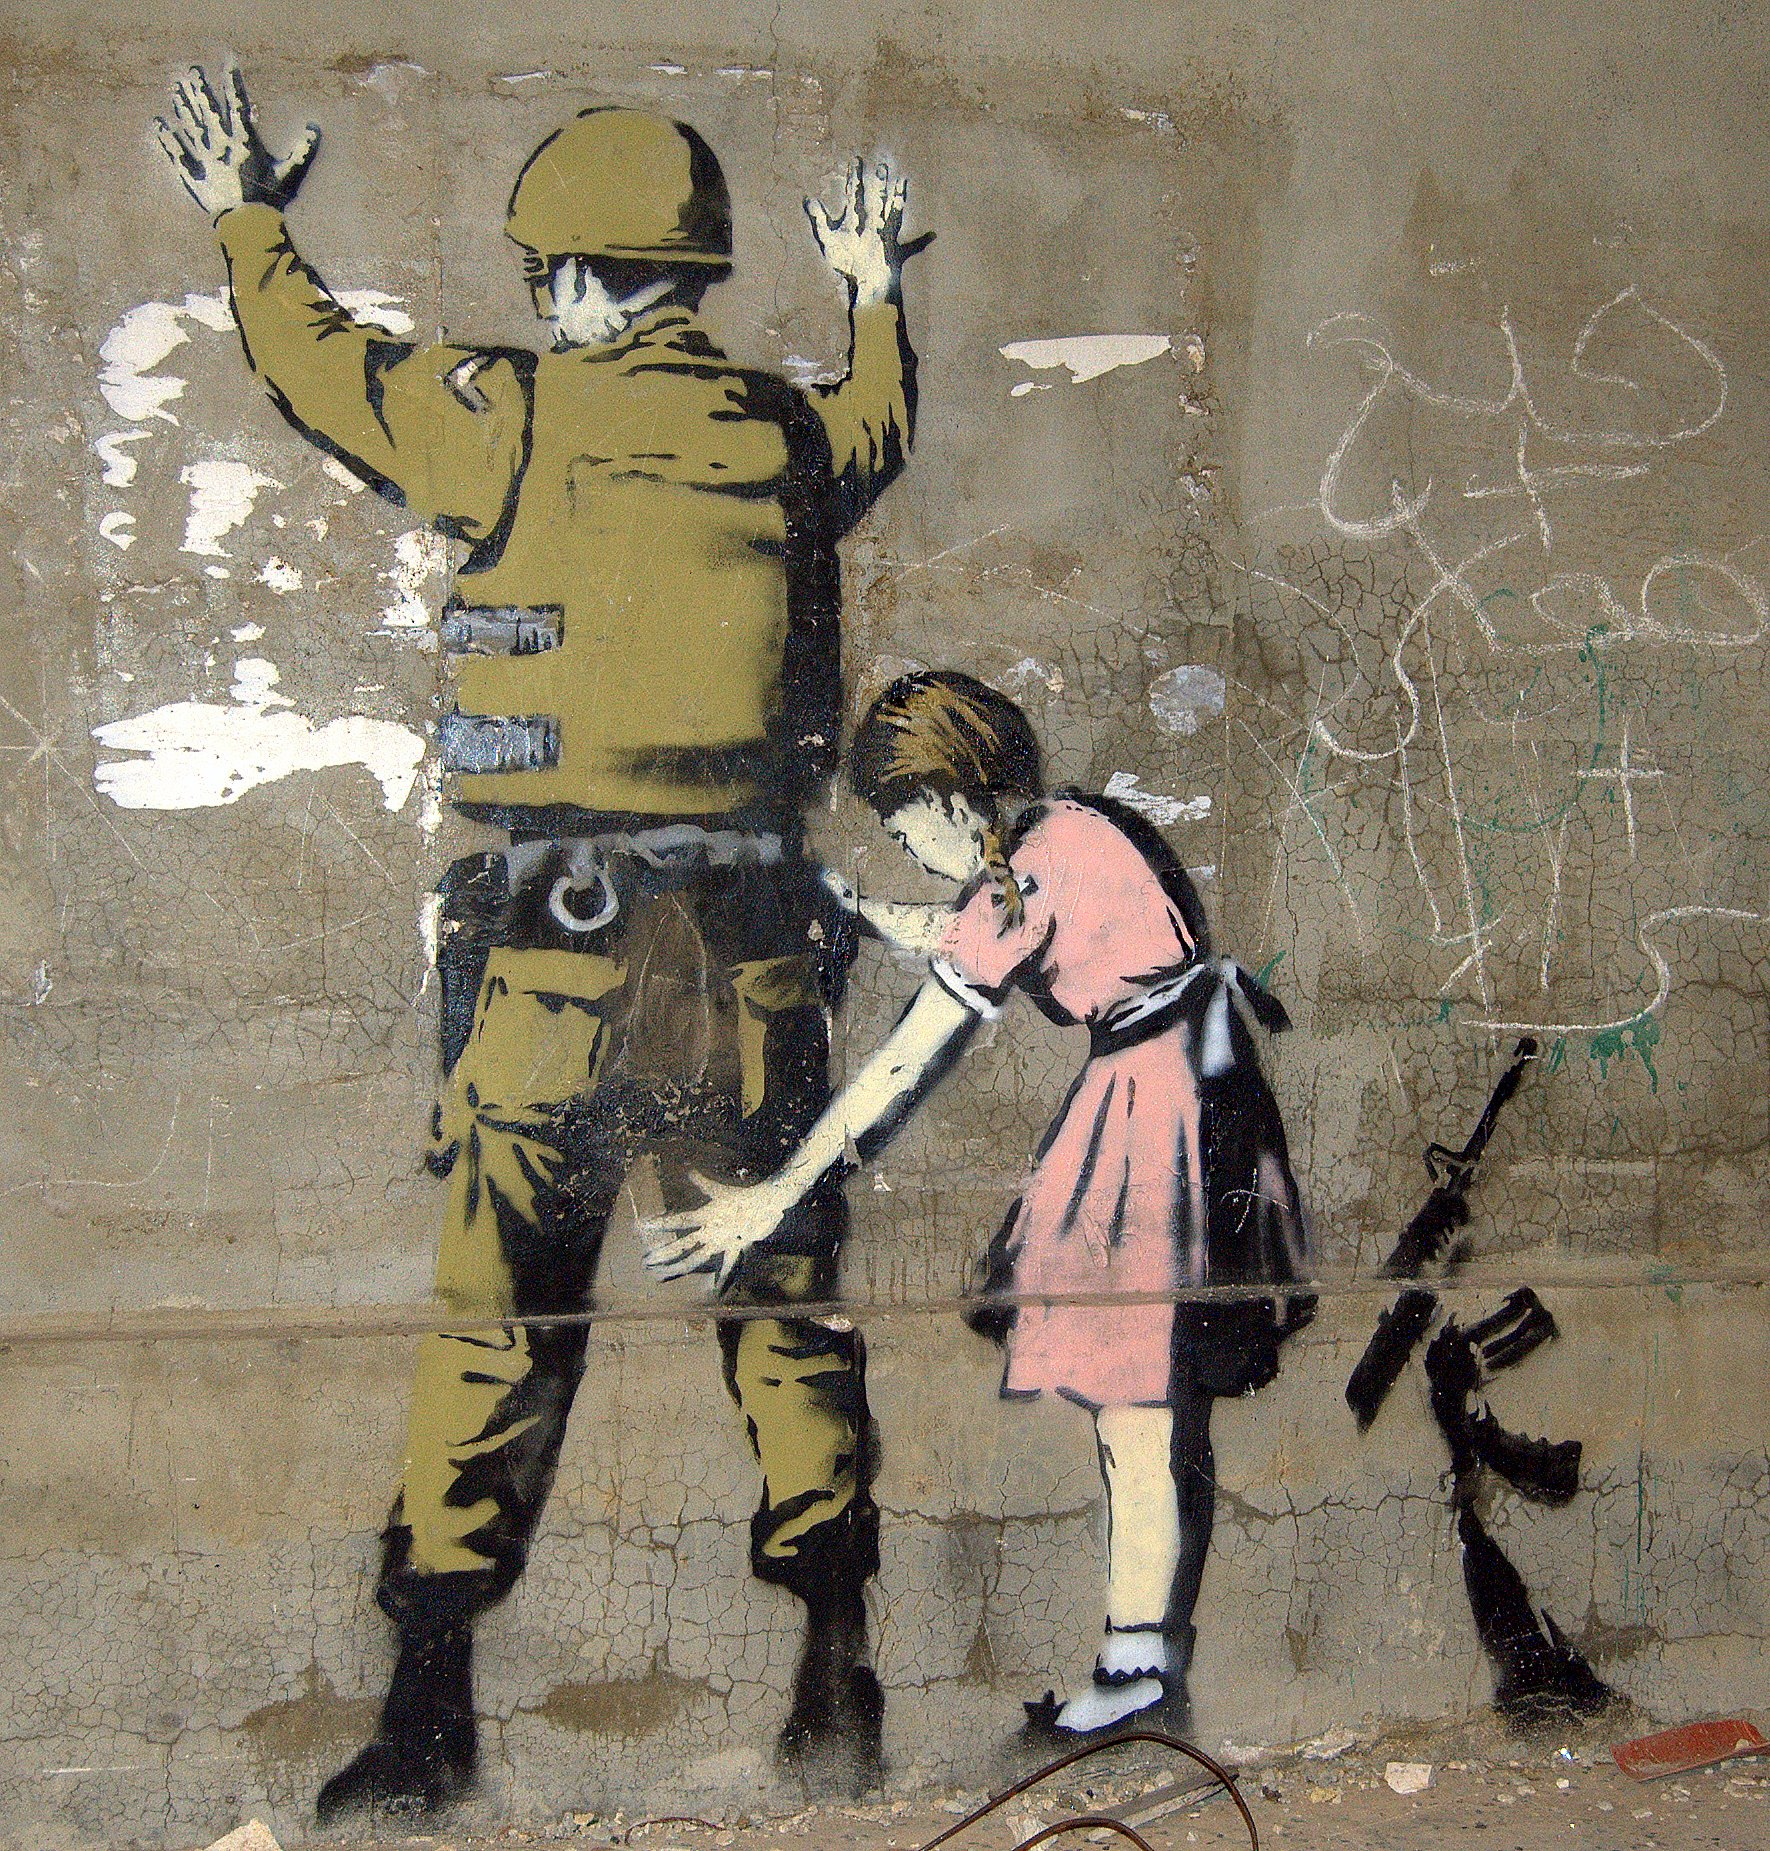 Many commentators have drawn comparisons between Lushsux's work and that of social activism artist Banksy, who has also famously painted stencil-based artwork on the Israeli-Palestine wall